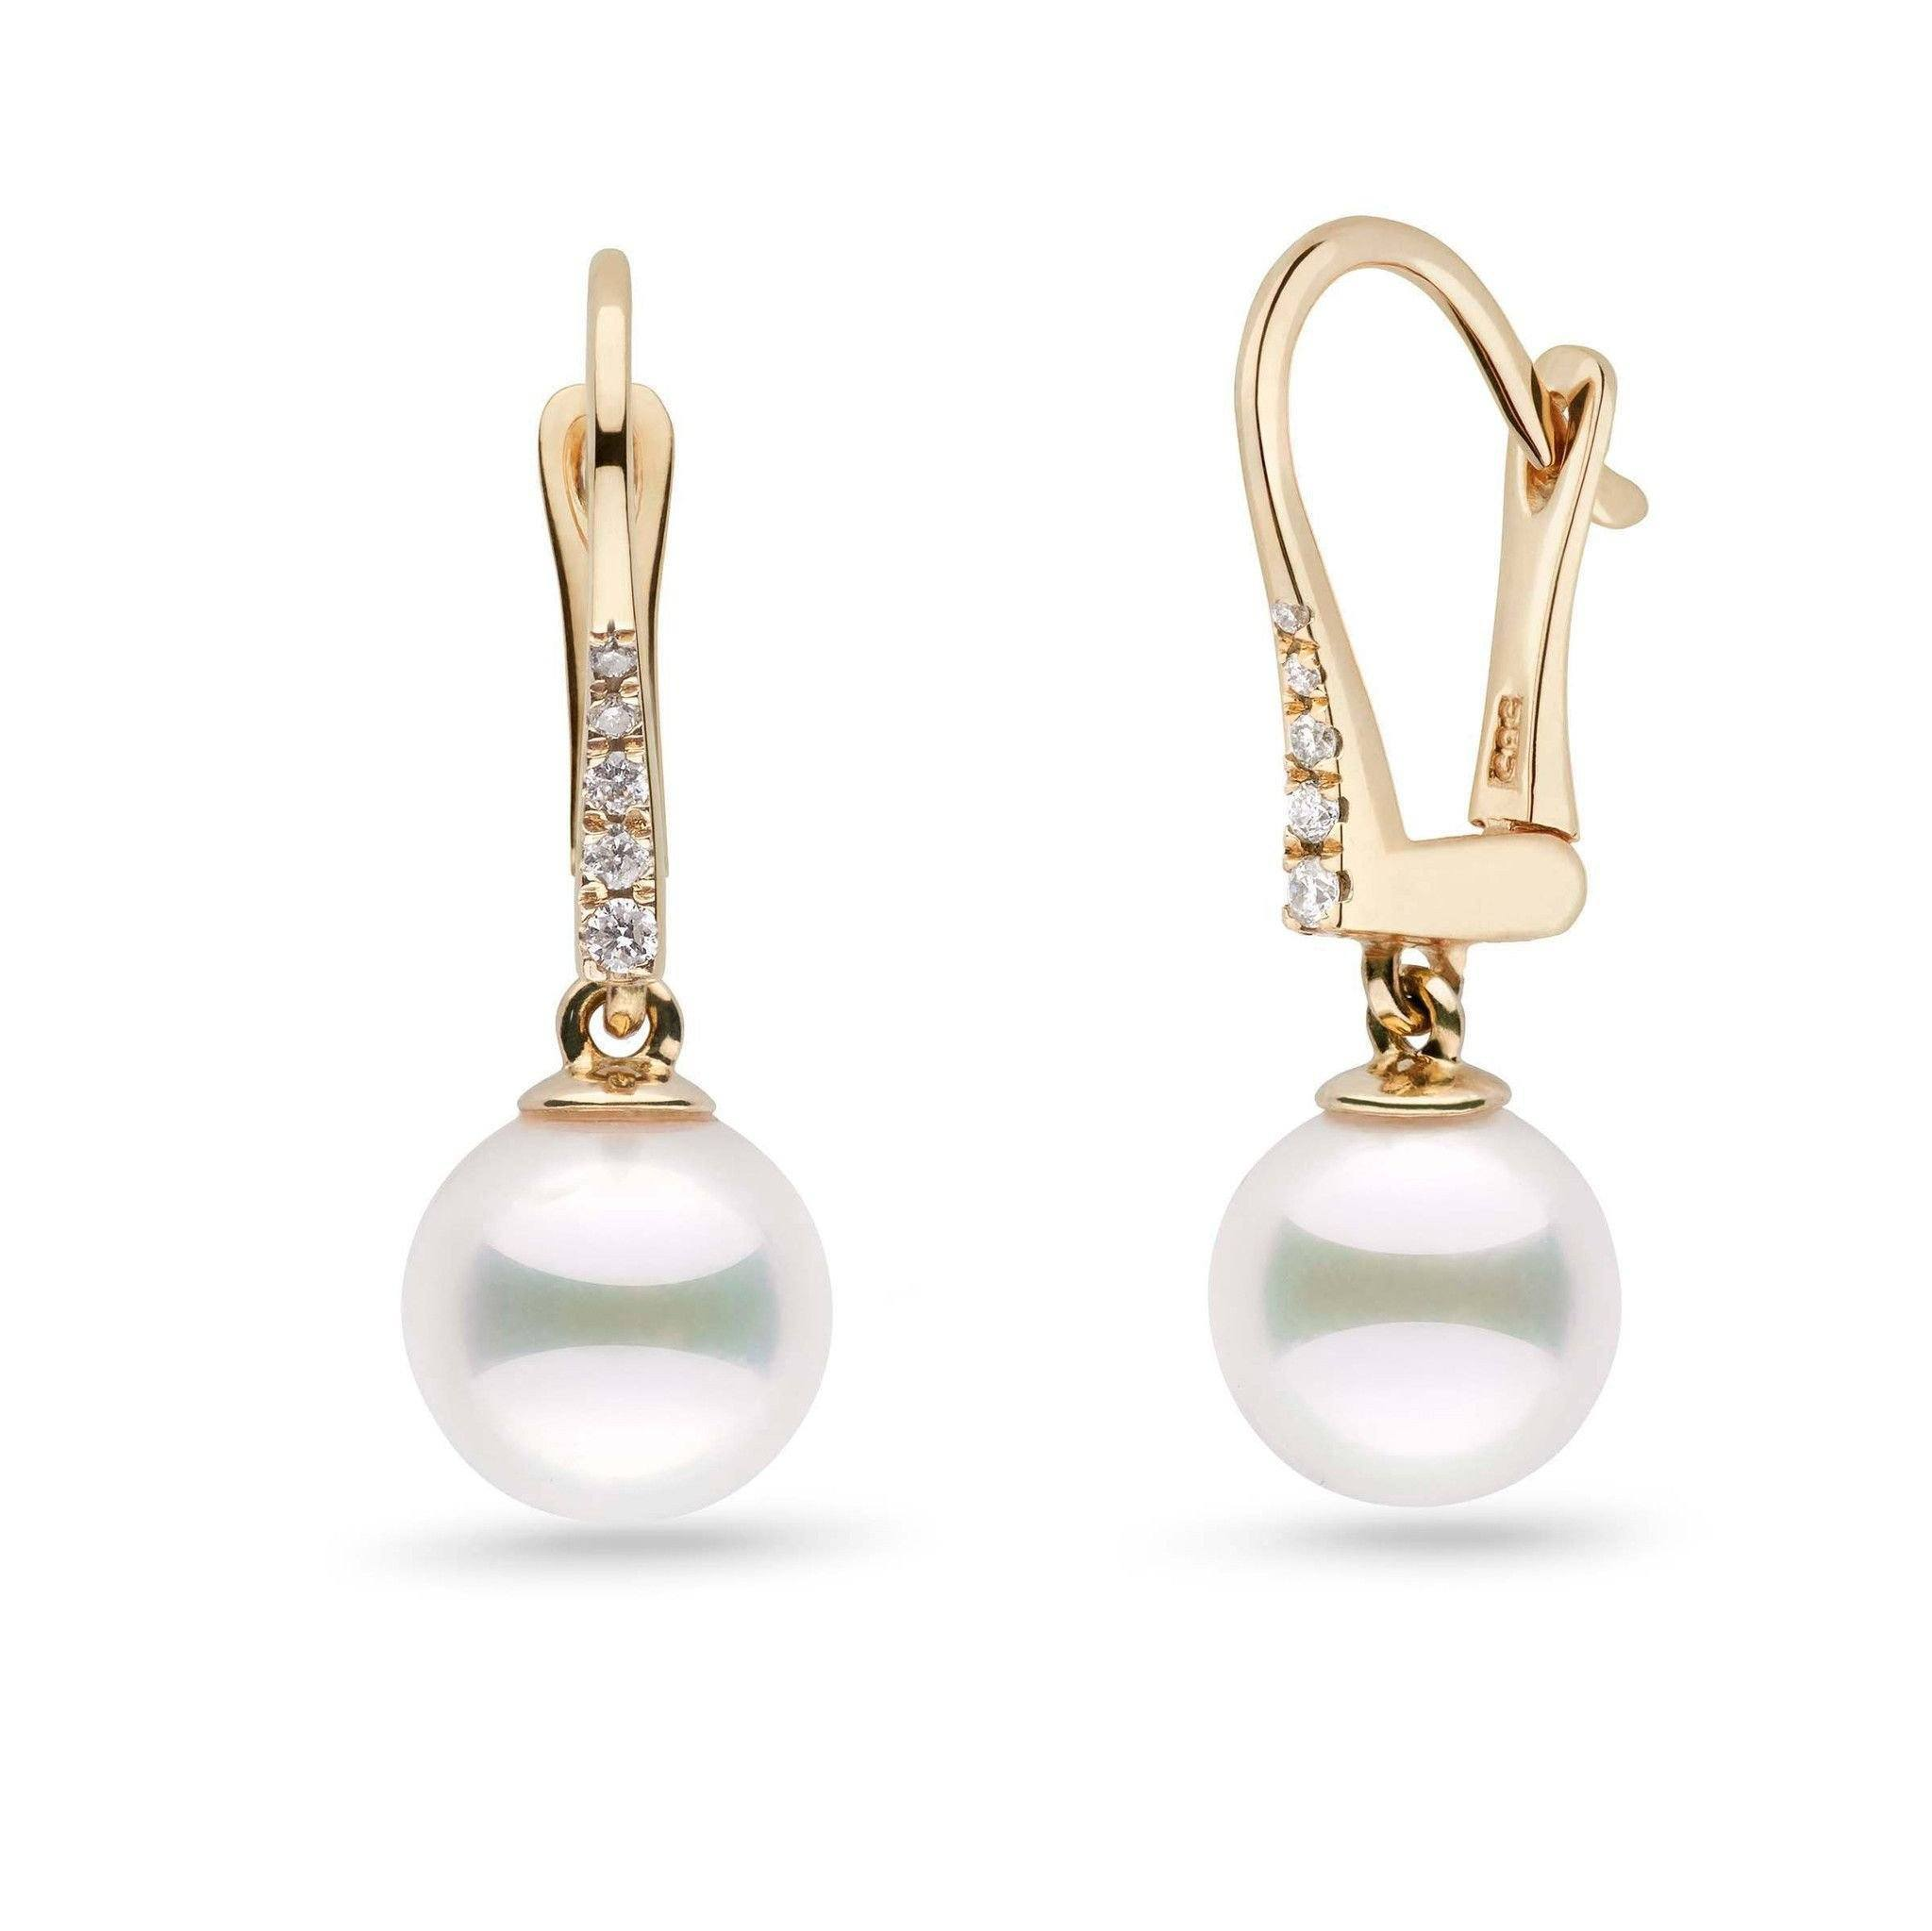 Allure Collection Akoya 8.0-8.5 mm Pearl & Diamond Dangle Earrings